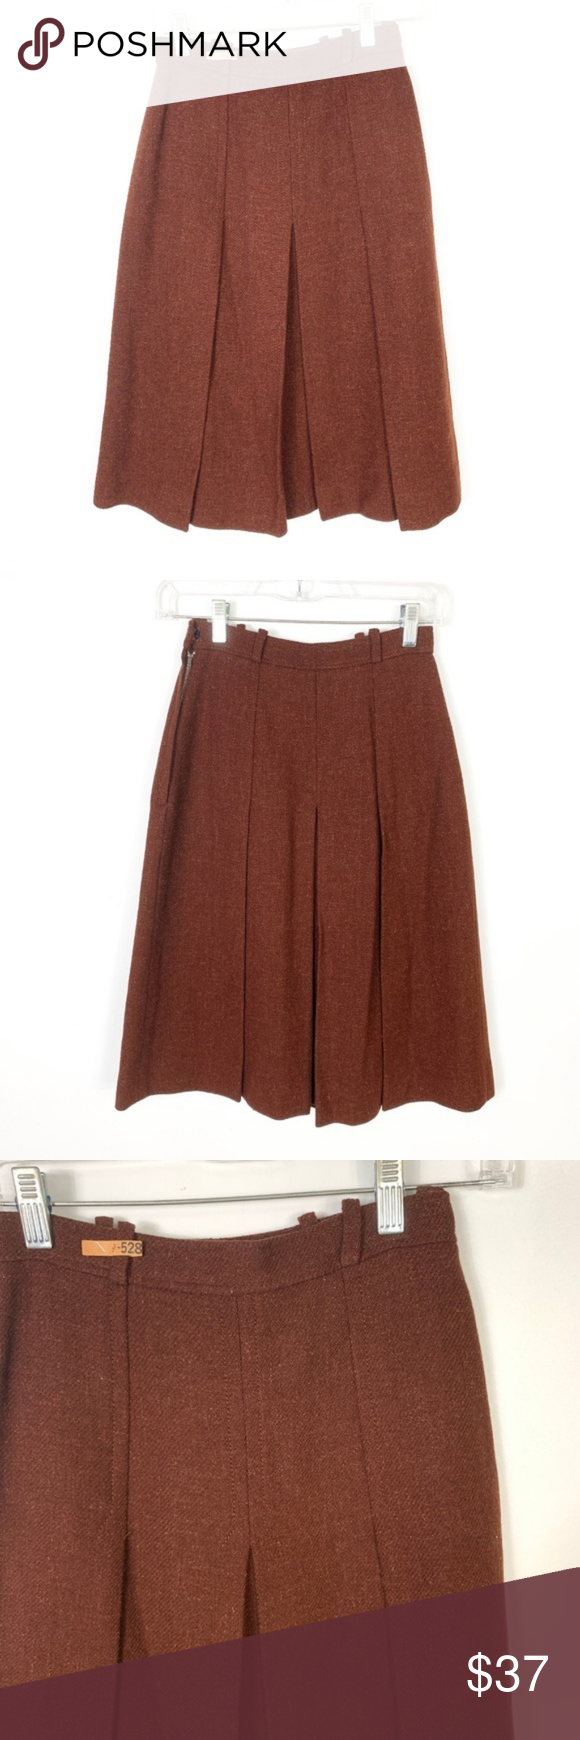 "Nina Ricci Pleated Skirt Wool Brown A Lined Lined Nina Ricci Pleated Skirt Wool Brown A Lined Lined Career Work Modest. Vintage Size 9. Waist measurements approx 25"" Gently preowned condition with no rips, holes, or stains. Please see pictures for approx measurements flatlays, relaxed, unstretched.   060819-071619-.45 Vintage Skirts"